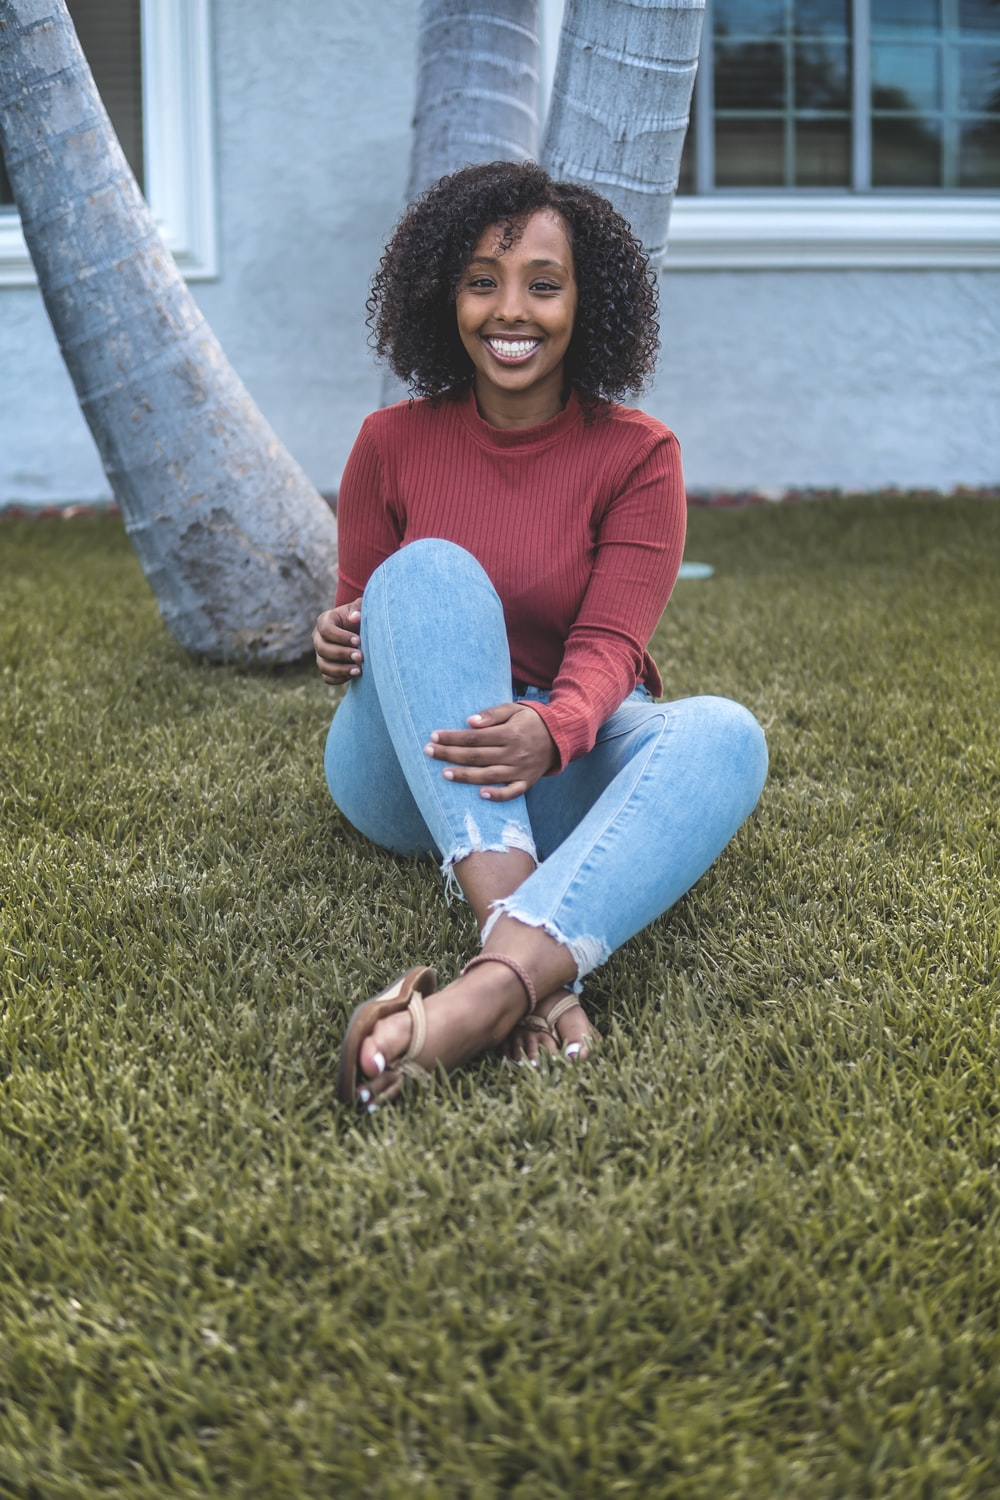 woman in red sweater and blue denim jeans sitting on green grass field during daytime